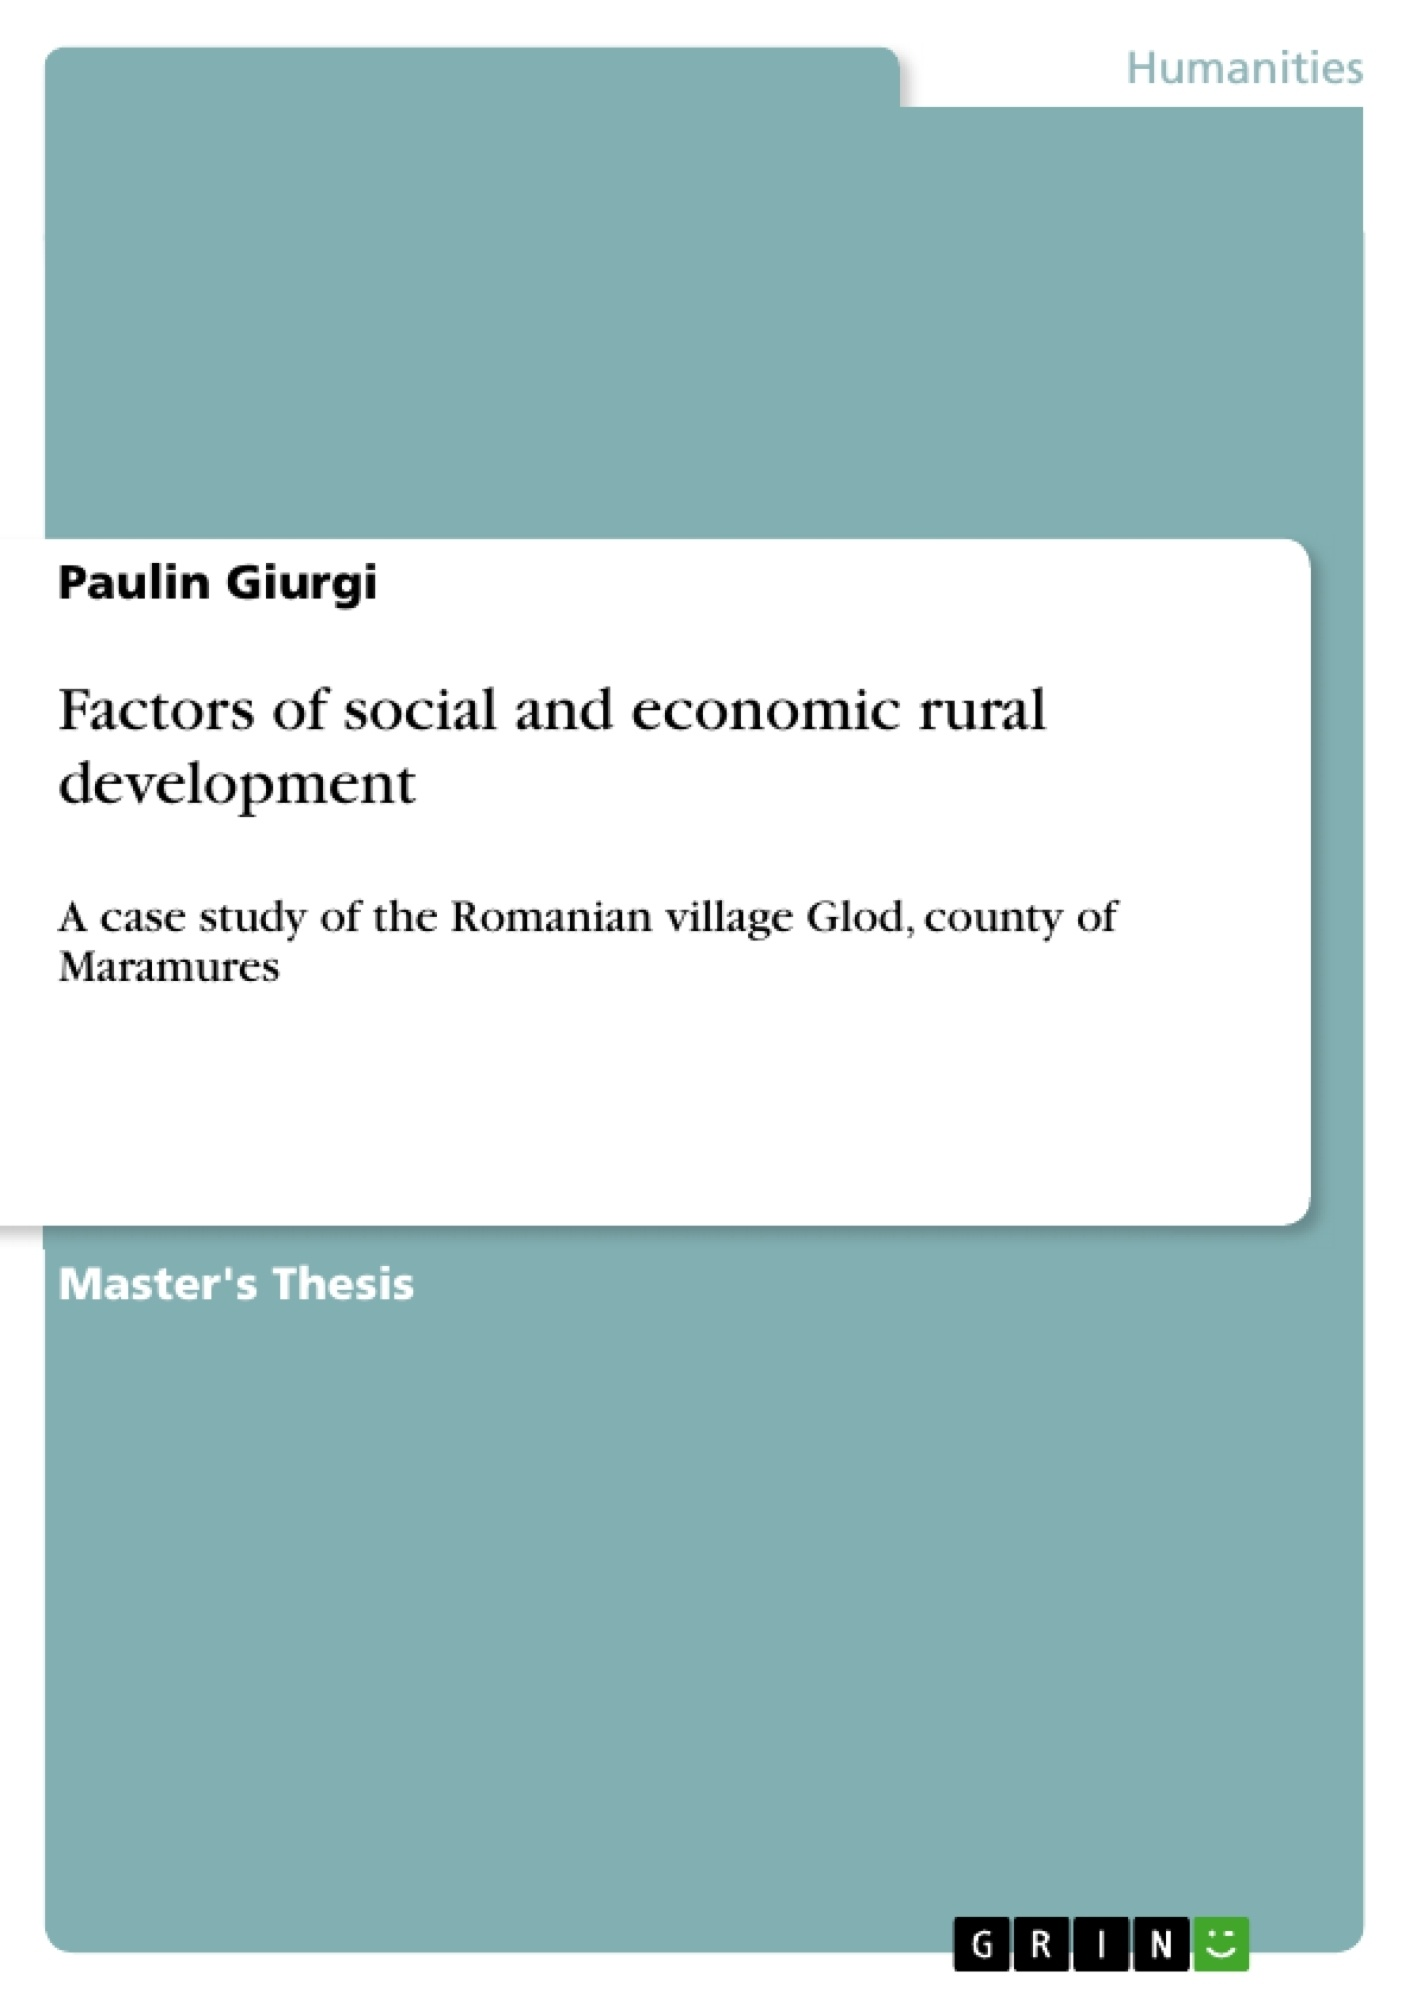 Factors of social and economic rural development publish your factors of social and economic rural development publish your masters thesis bachelors thesis essay or term paper fandeluxe Image collections